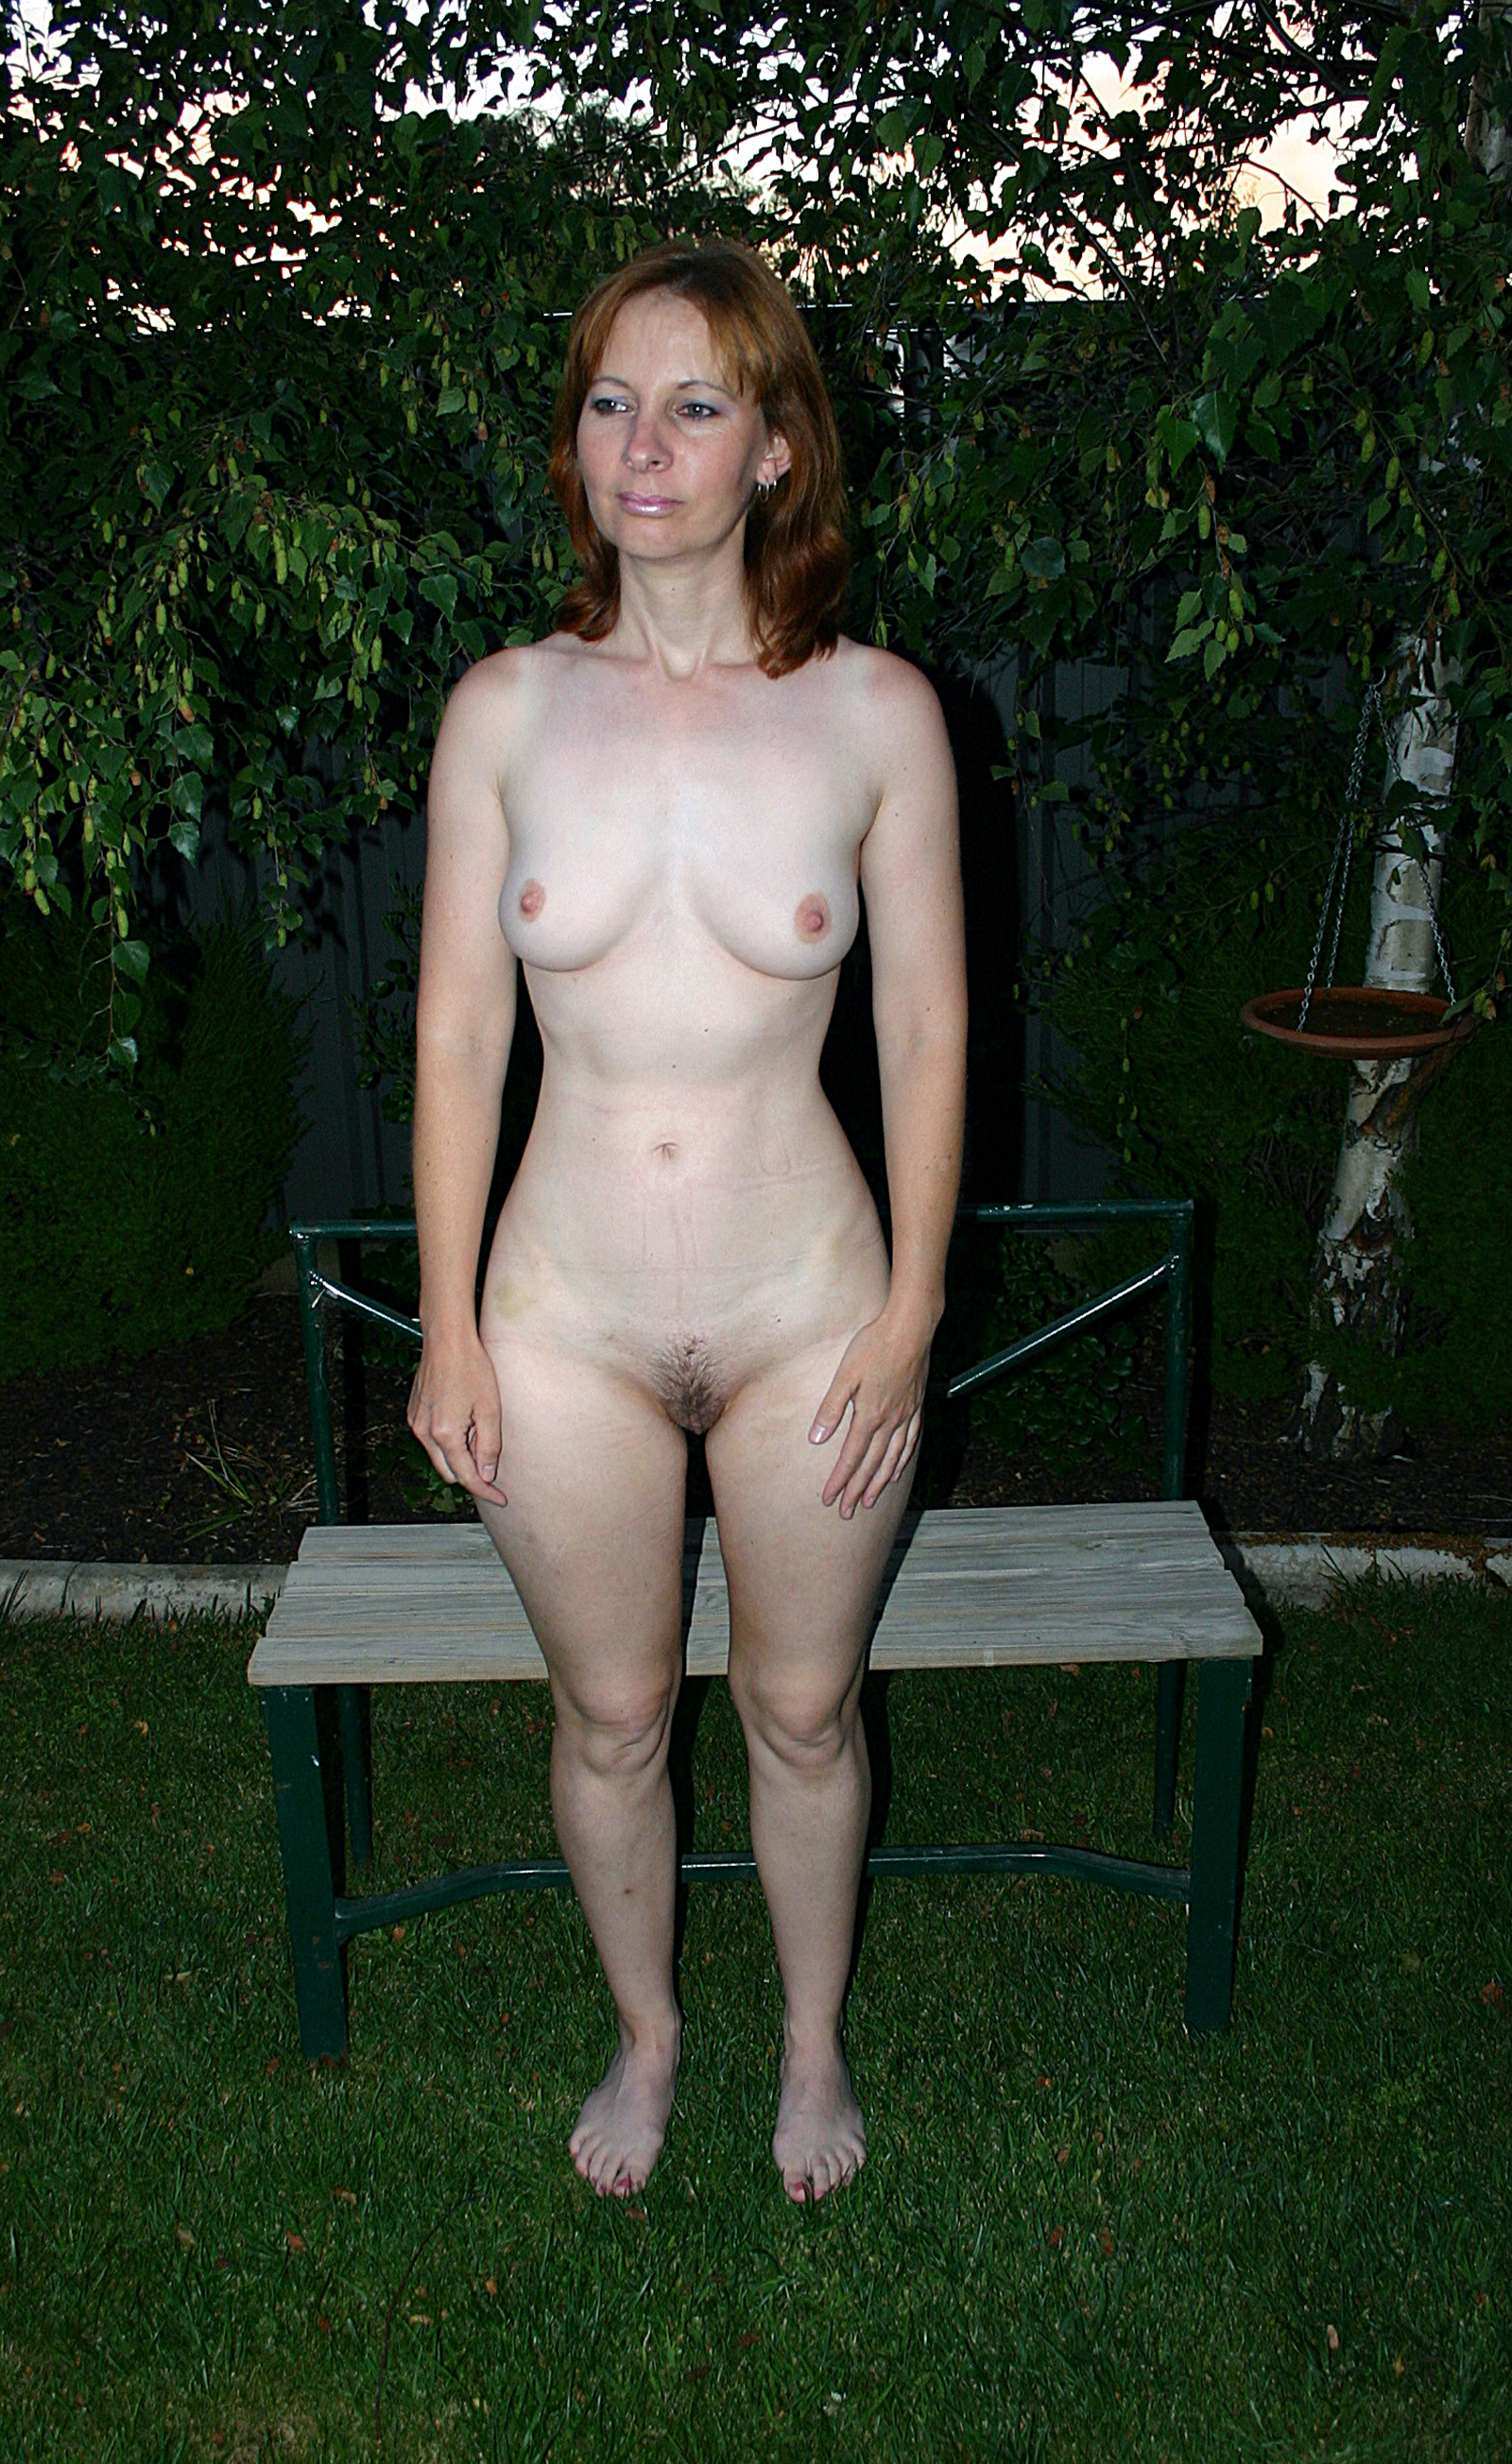 haley off american dad nude